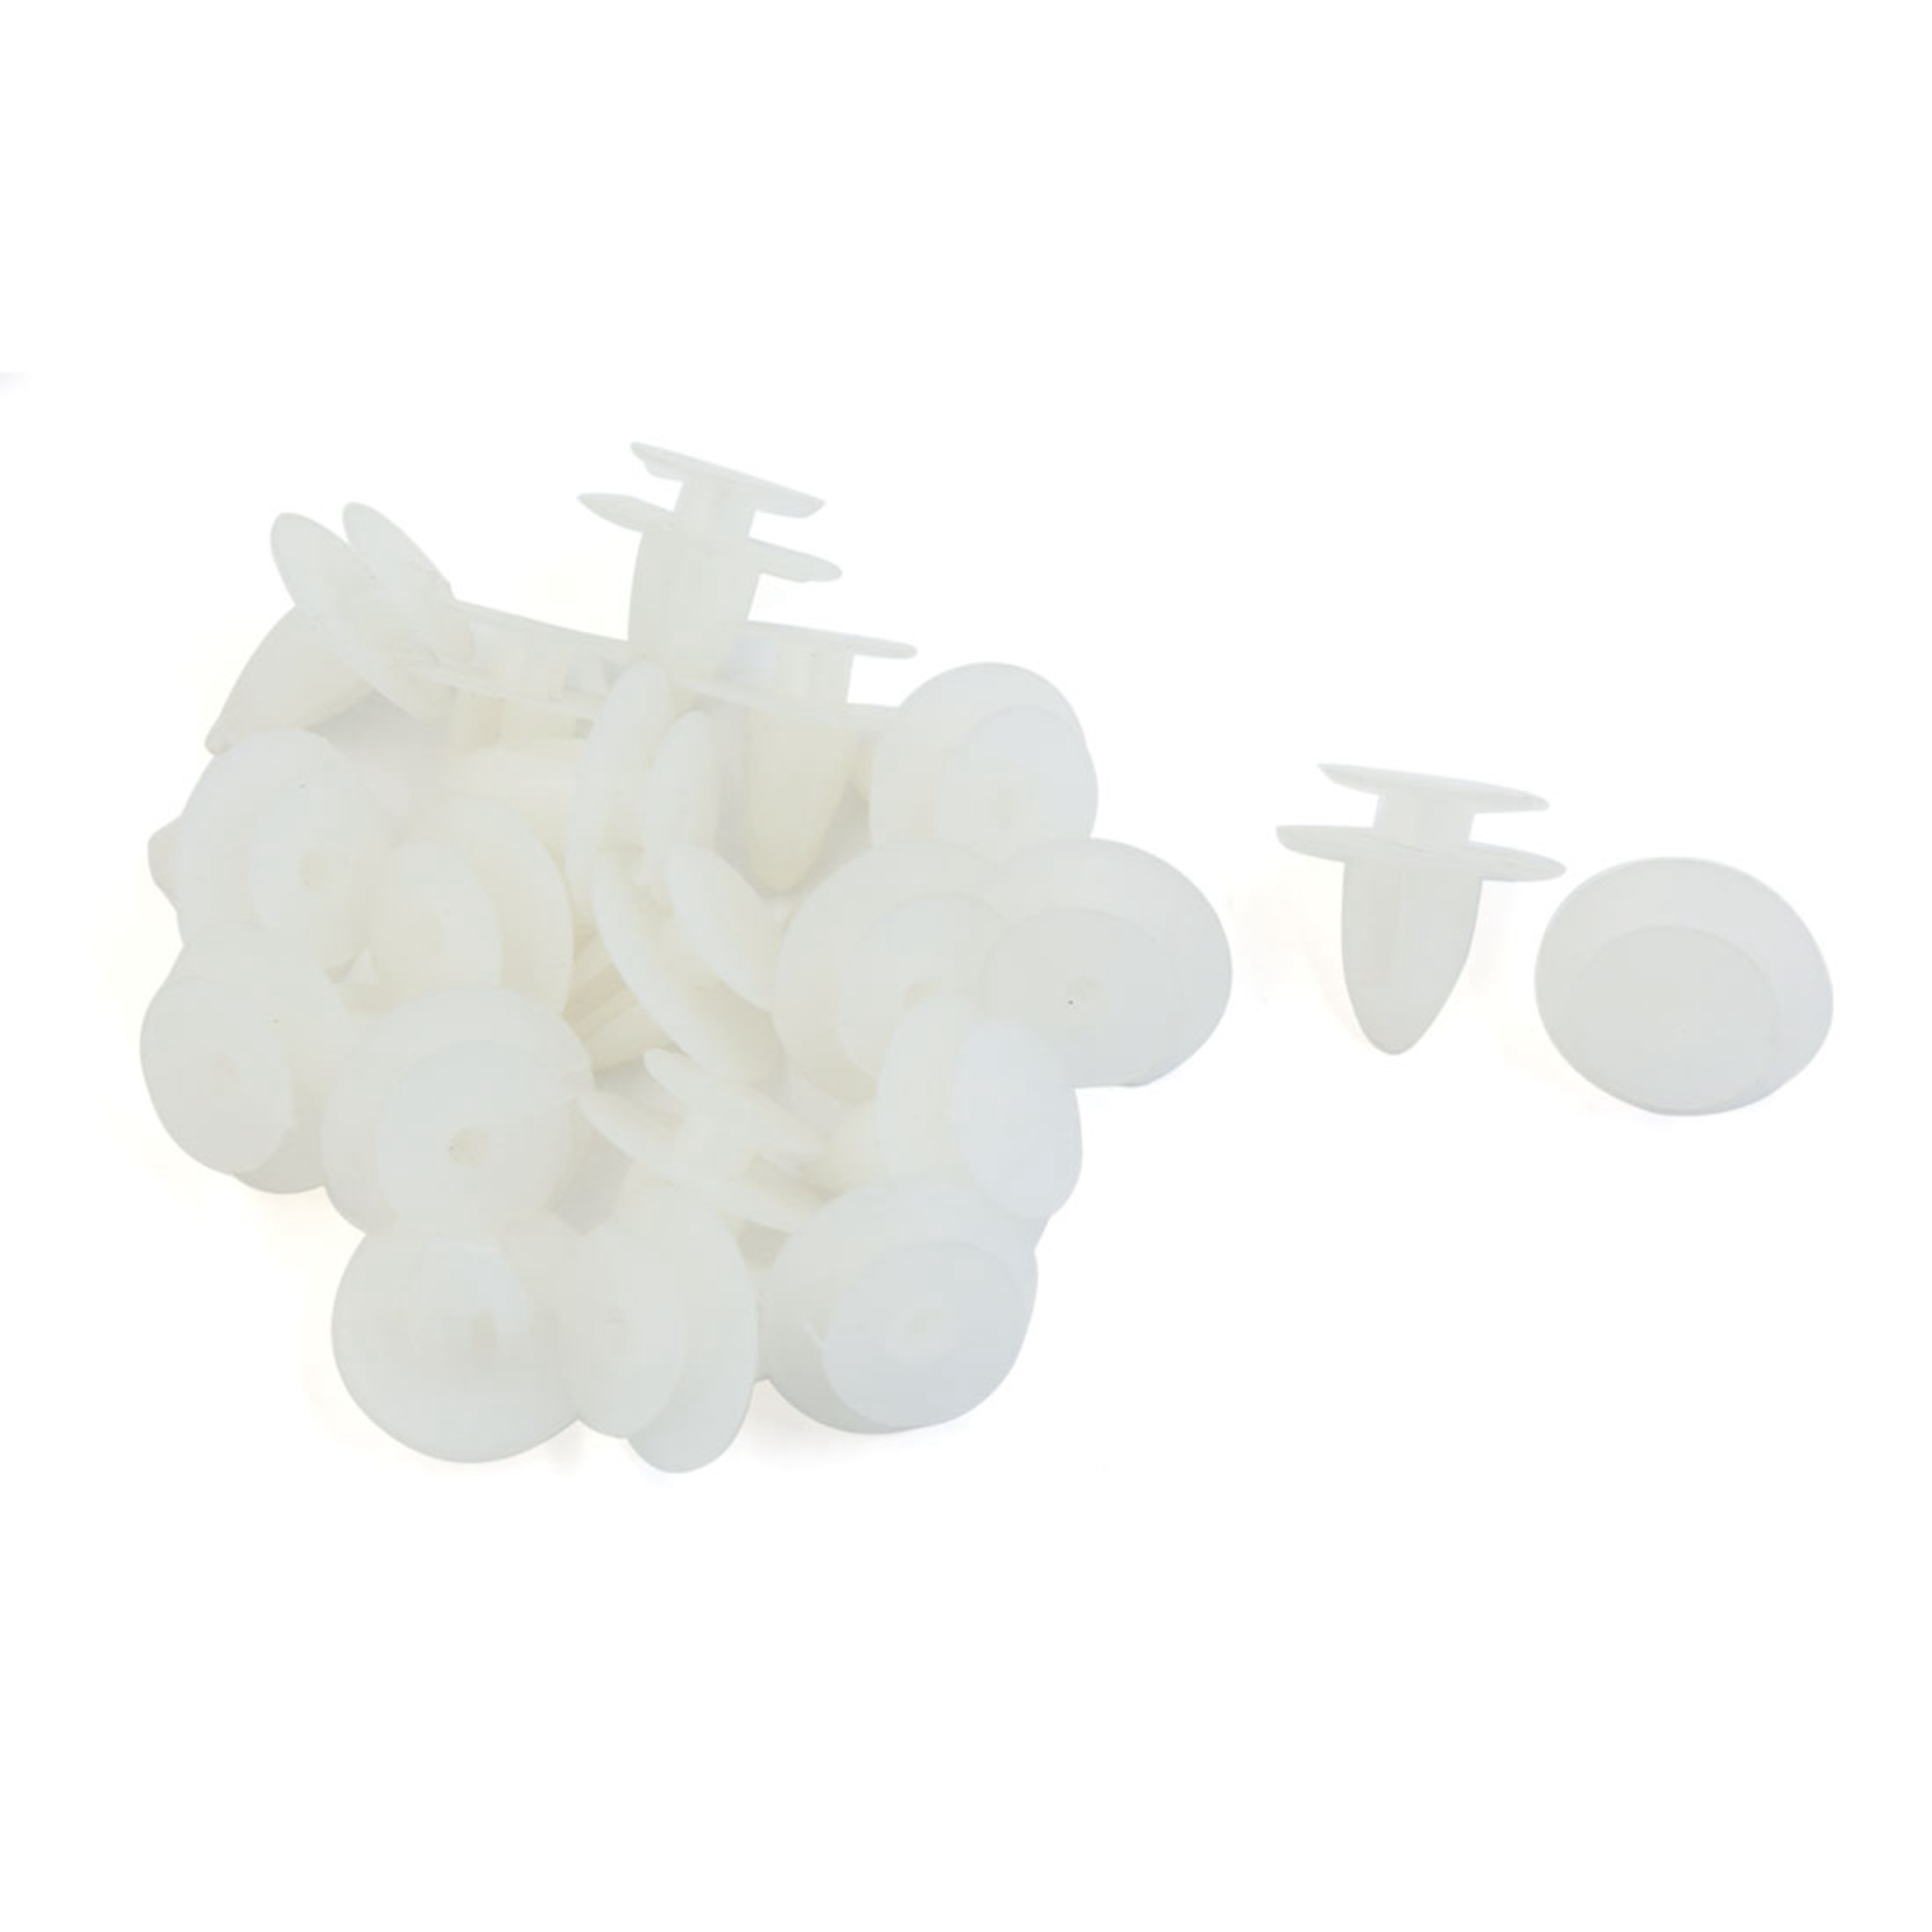 White Car Door Trim Panel Hood Plastic Rivet Fasteners Clips 7mm Hole Dia 20 Pcs